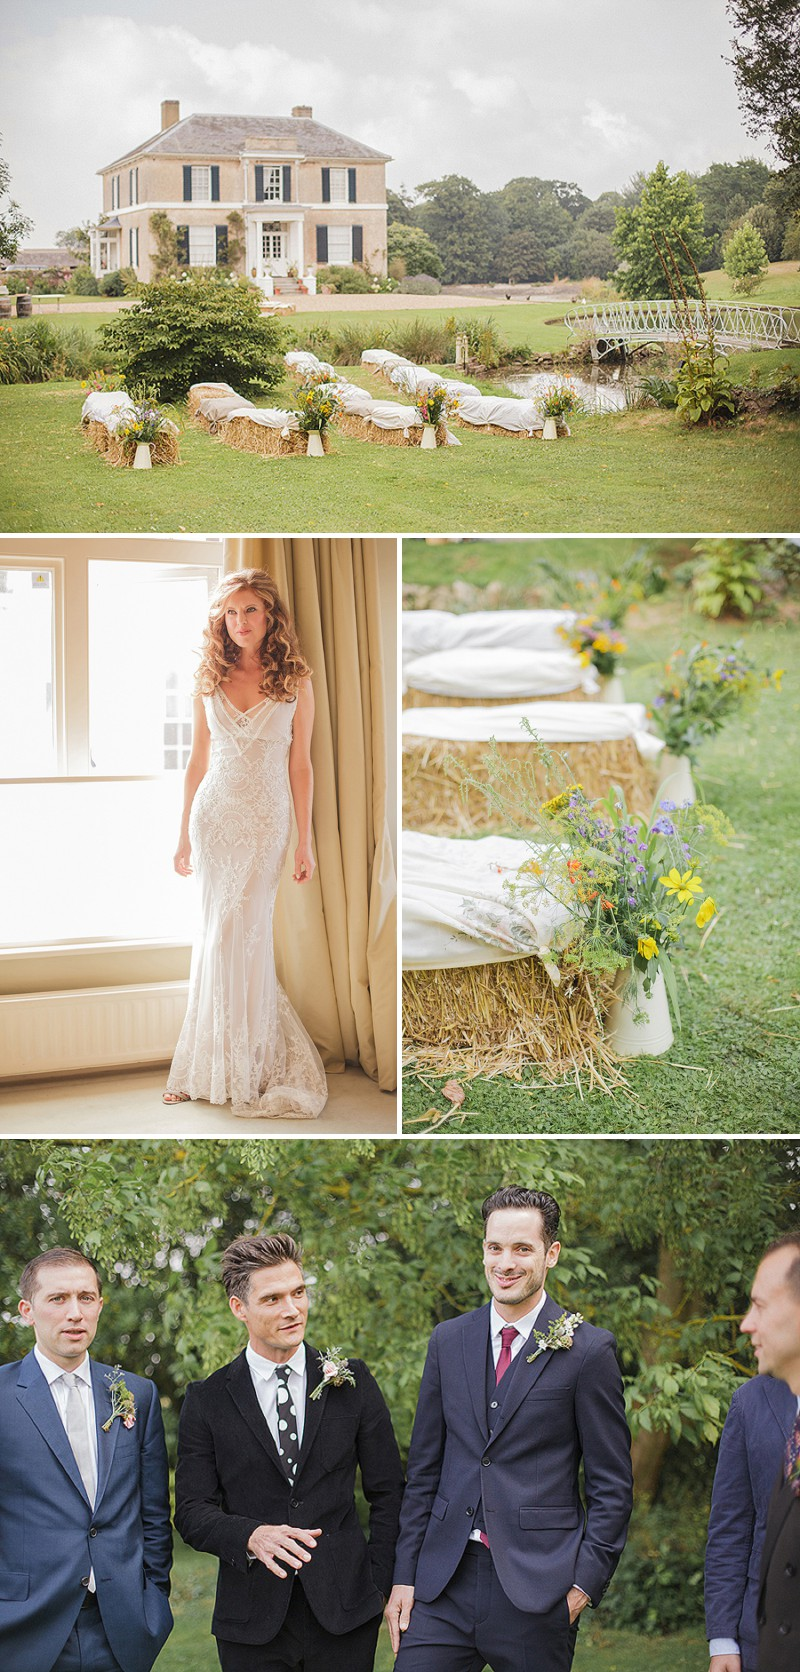 A Pre Raphaelite Inspired Wedding At Preston Court With A John Zimmerman Bespoke Dress And Bridesmaids In Vintage Nightgowns By Sarah Gawler Photography. 0001 A Pre Raphaelite Love Affair.